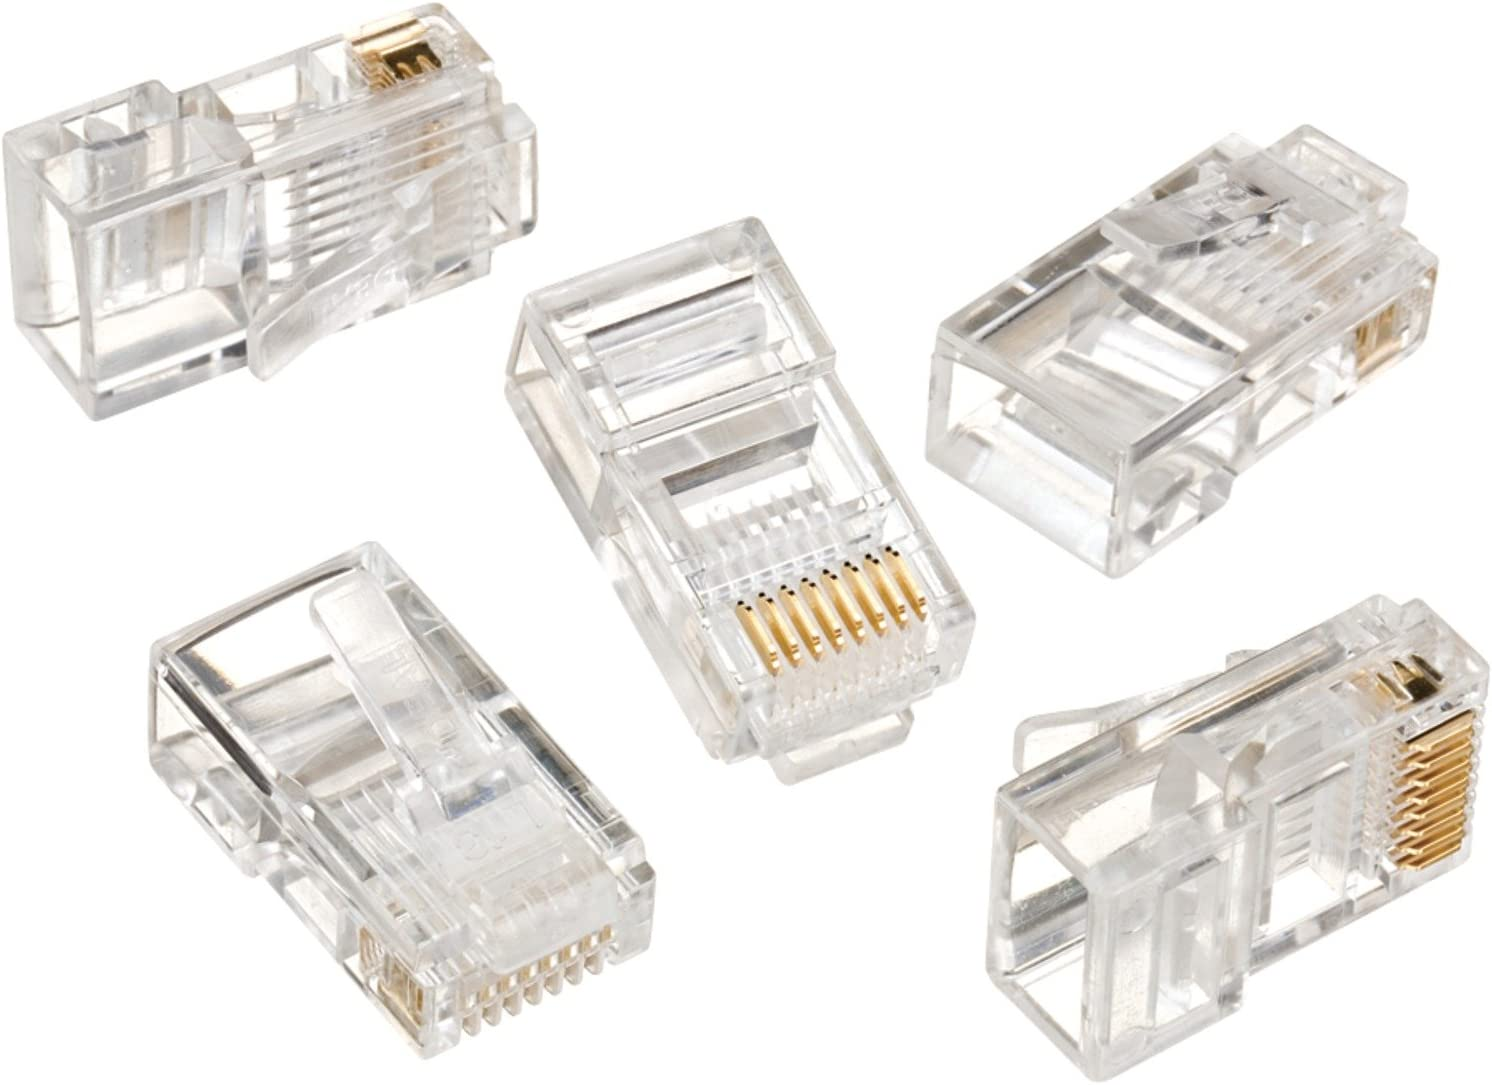 IDEAL 85-346 RJ45 8P8C Max 71% OFF Mod 25 New York Mall Plugs Card Multicolor of